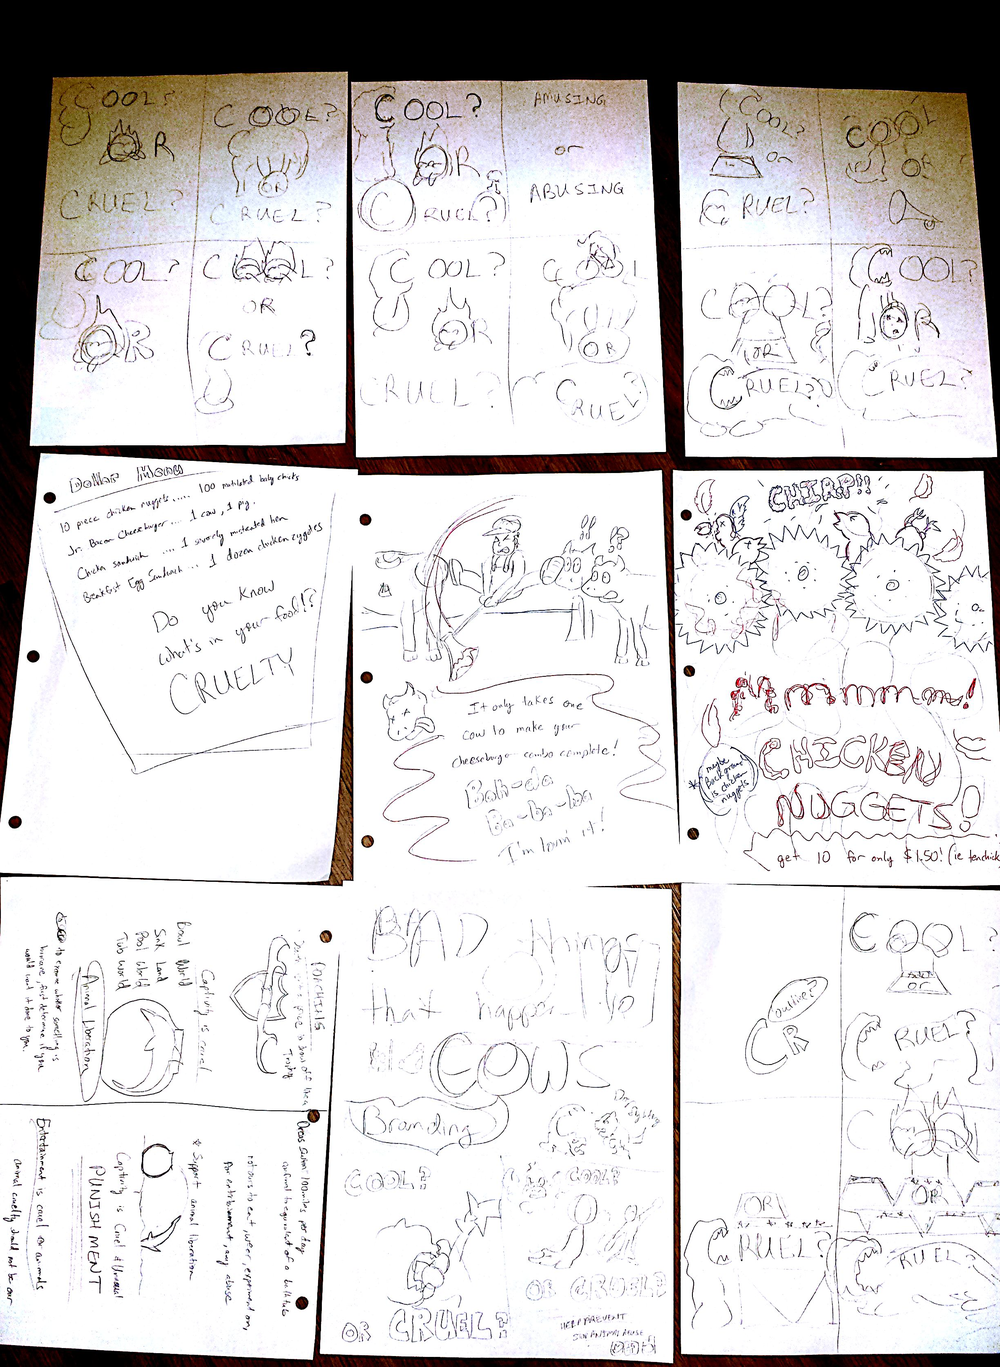 Drafts and Sketches Animal Cruelty_Page_3_Image_0001.png